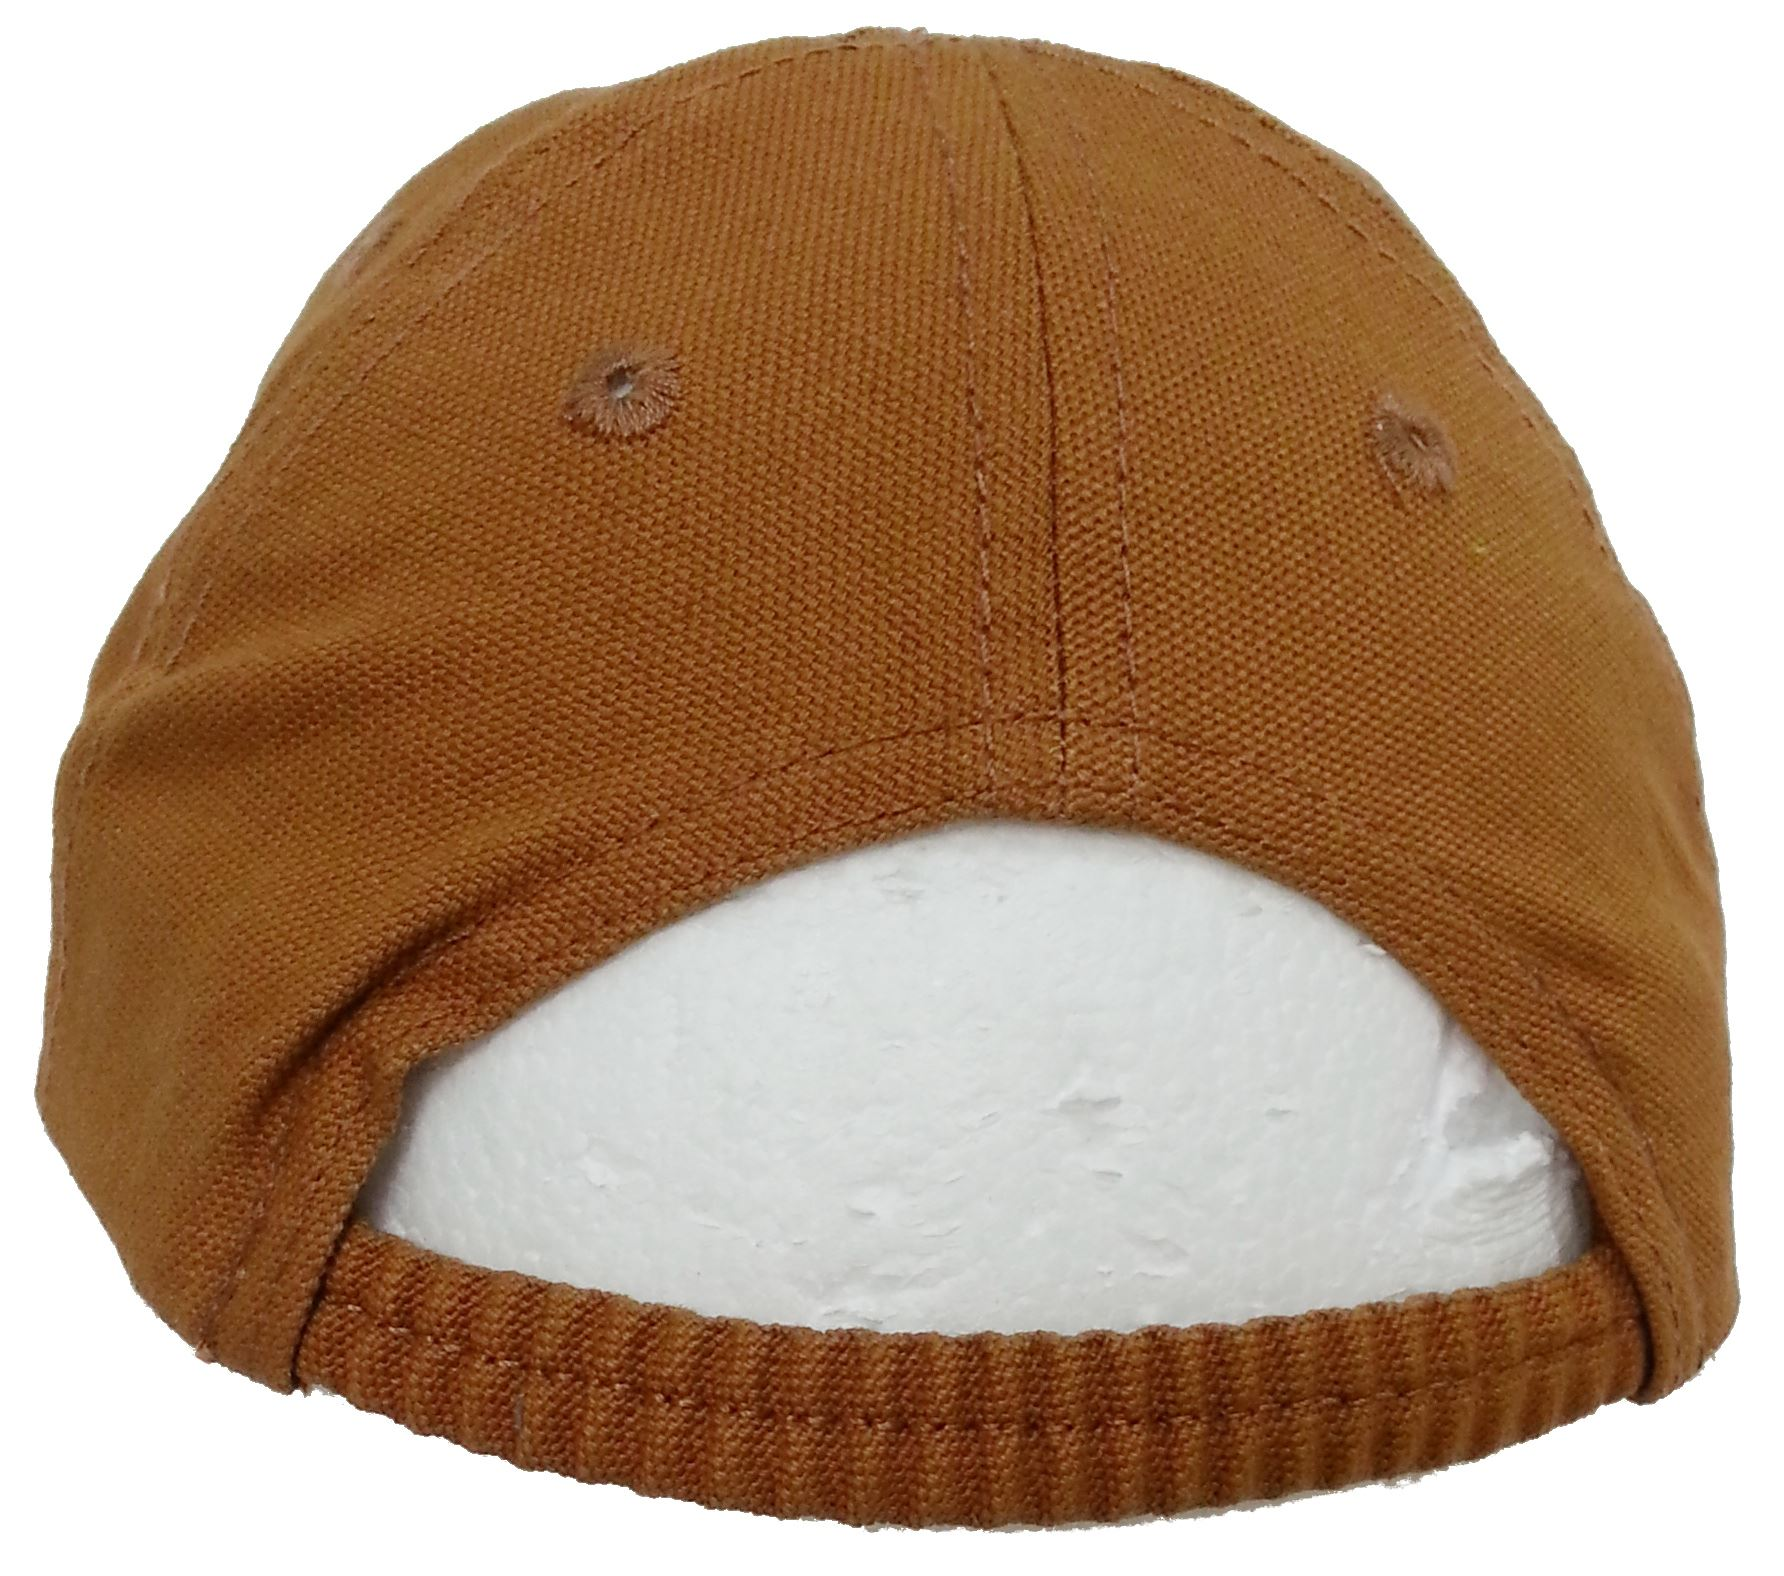 carhartt knit hat with visor f7a997c40bf0